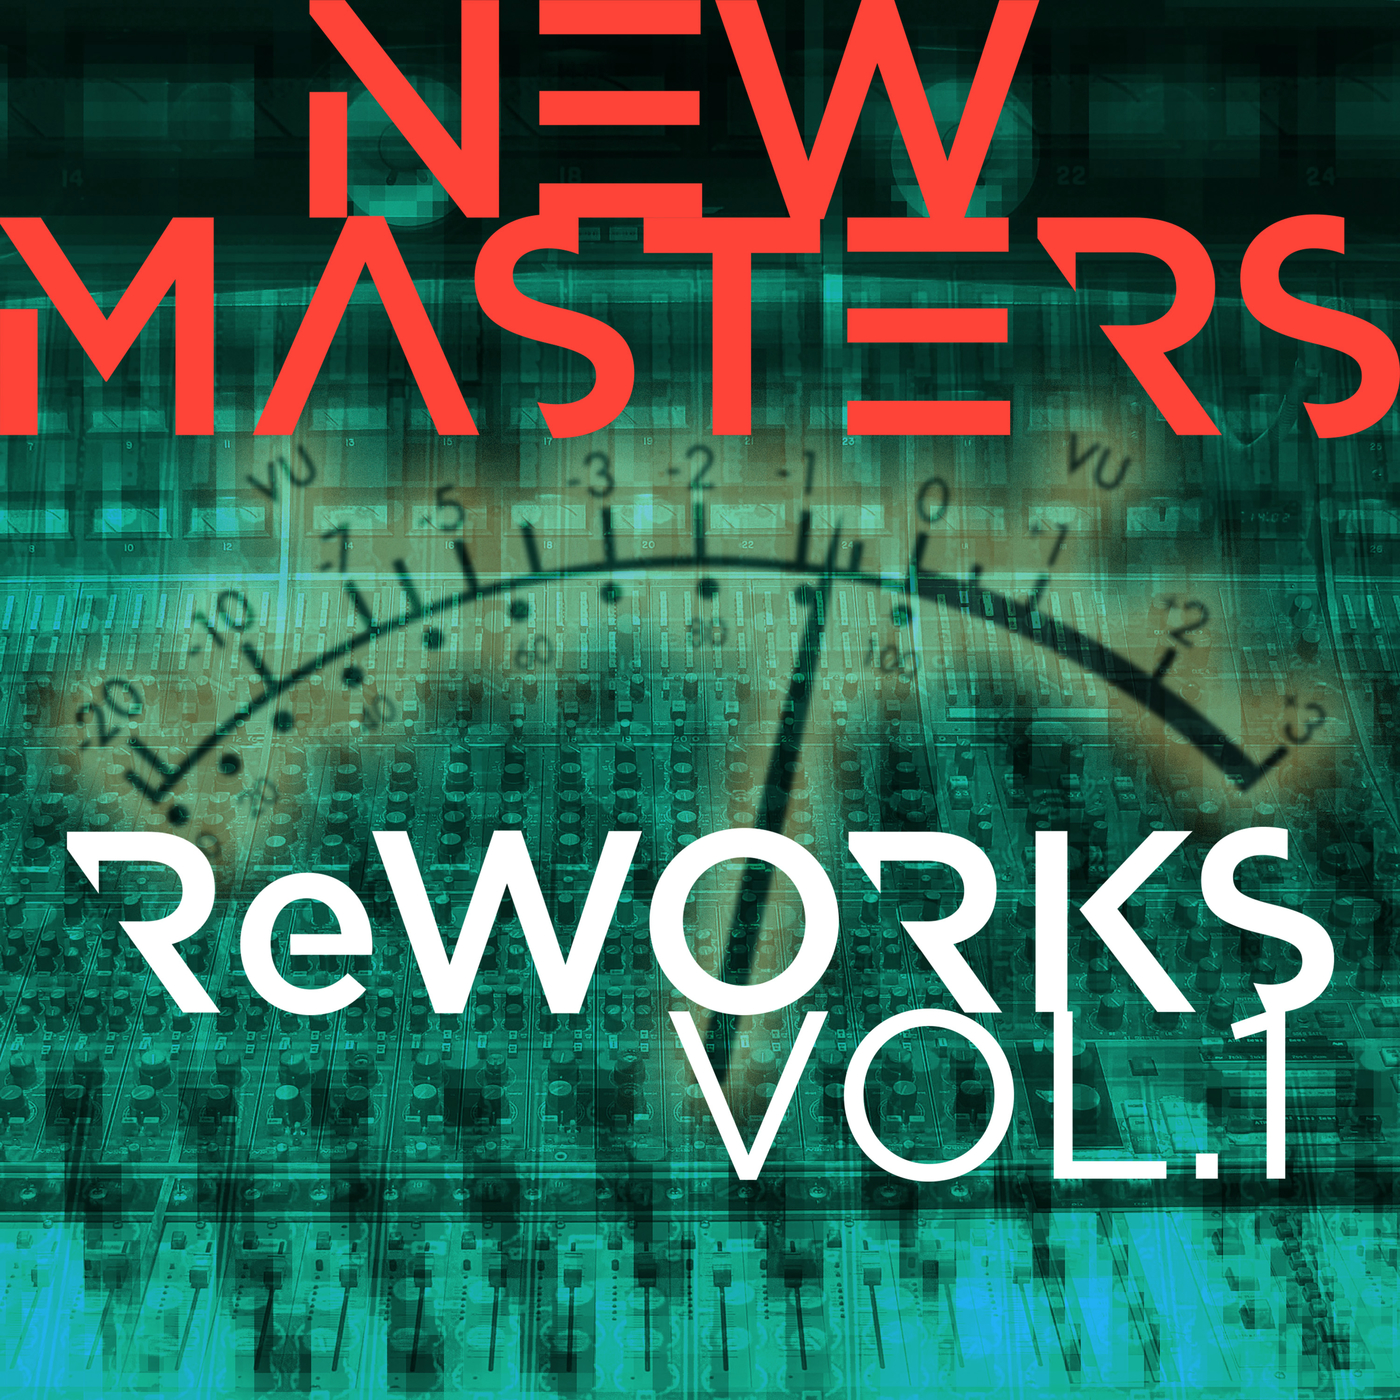 ReWORKS - Vol. 1 - New Masters